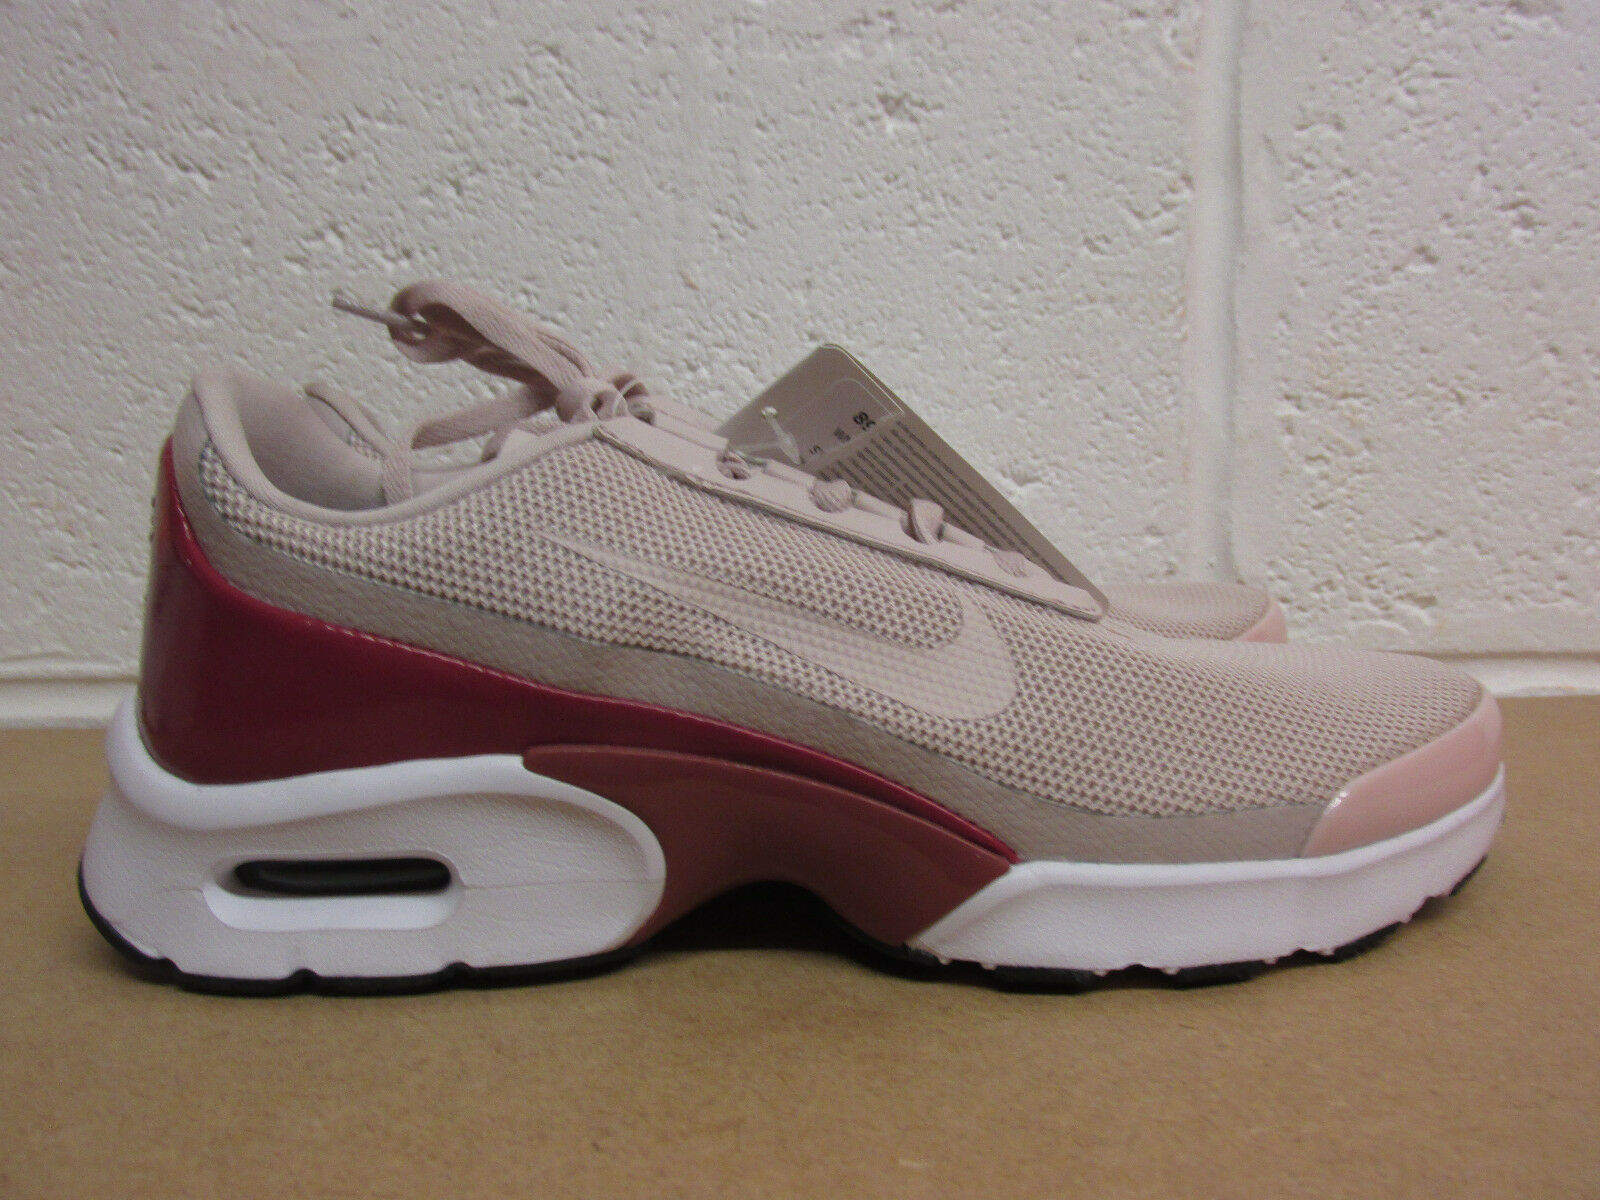 Nike air max jewell 896194 601 womens trainers sneakers shoes SAMPLE